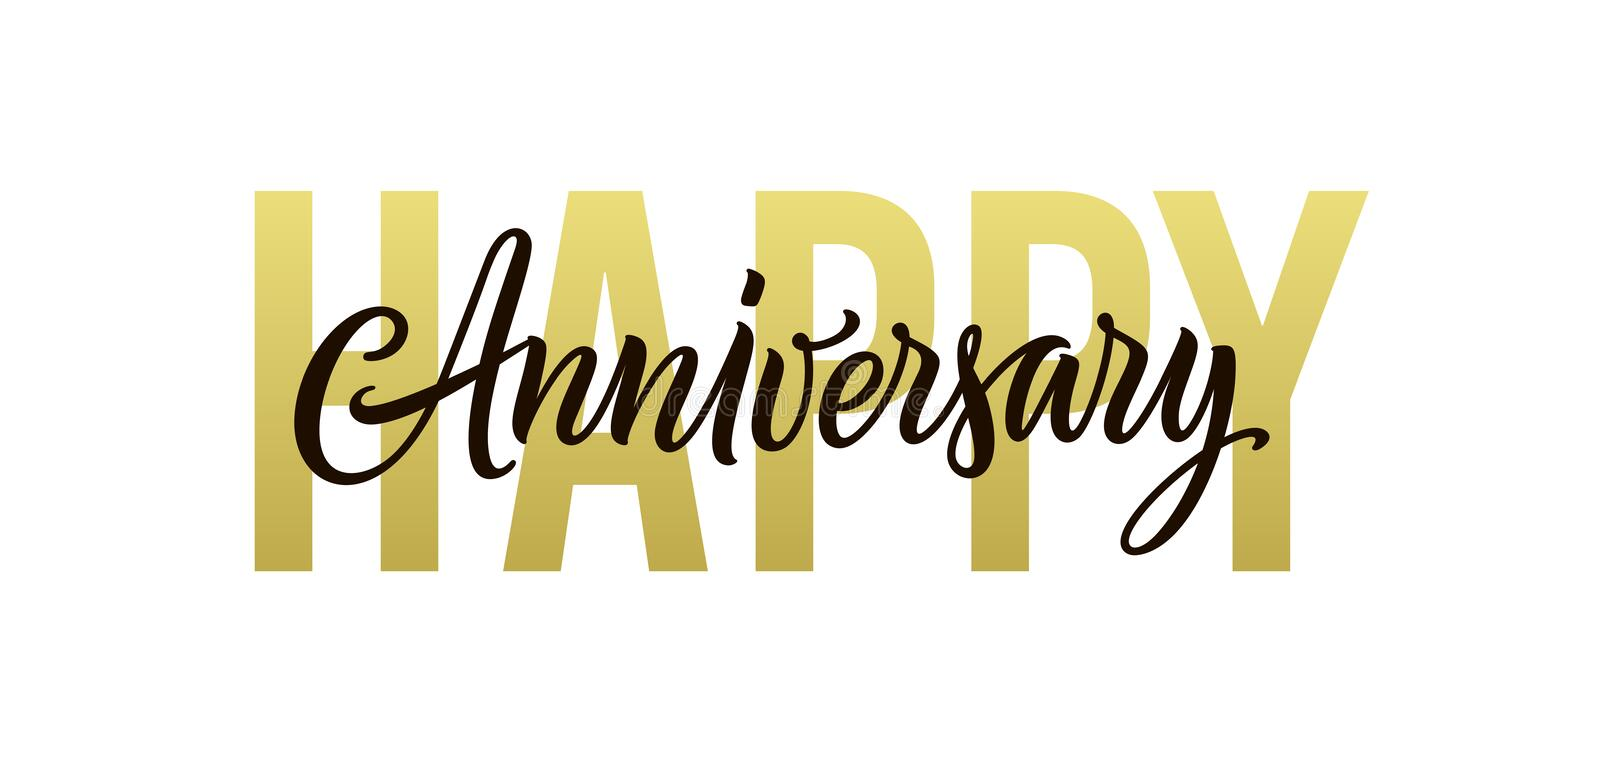 Happy anniversary. Gold, black and white greeting card design. Vector happy anniversary text isolated on white stock illustration